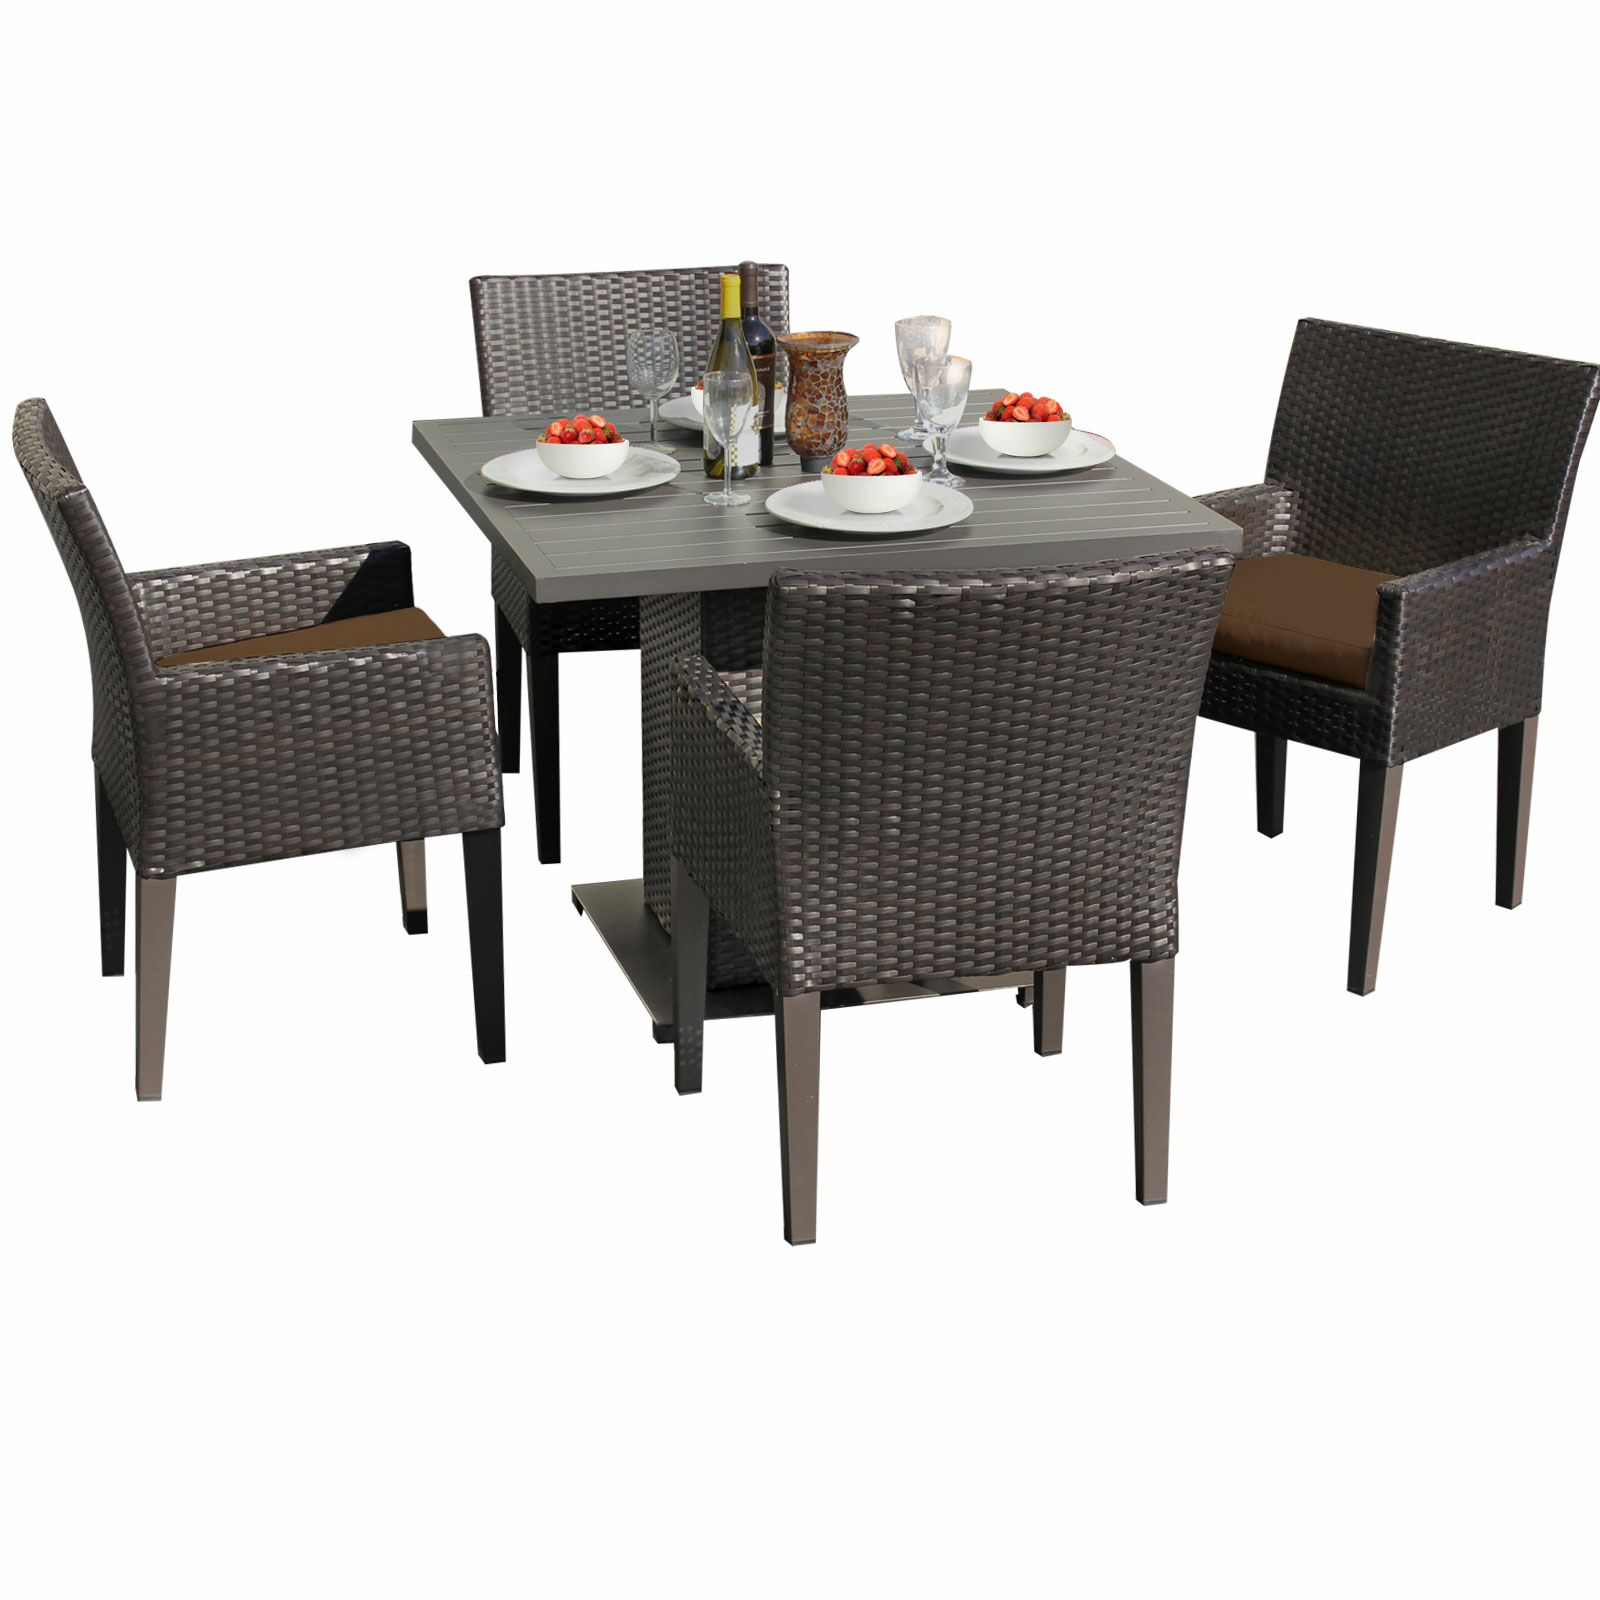 Napa 5 Piece Dining Set with Cushions Color: Wheat